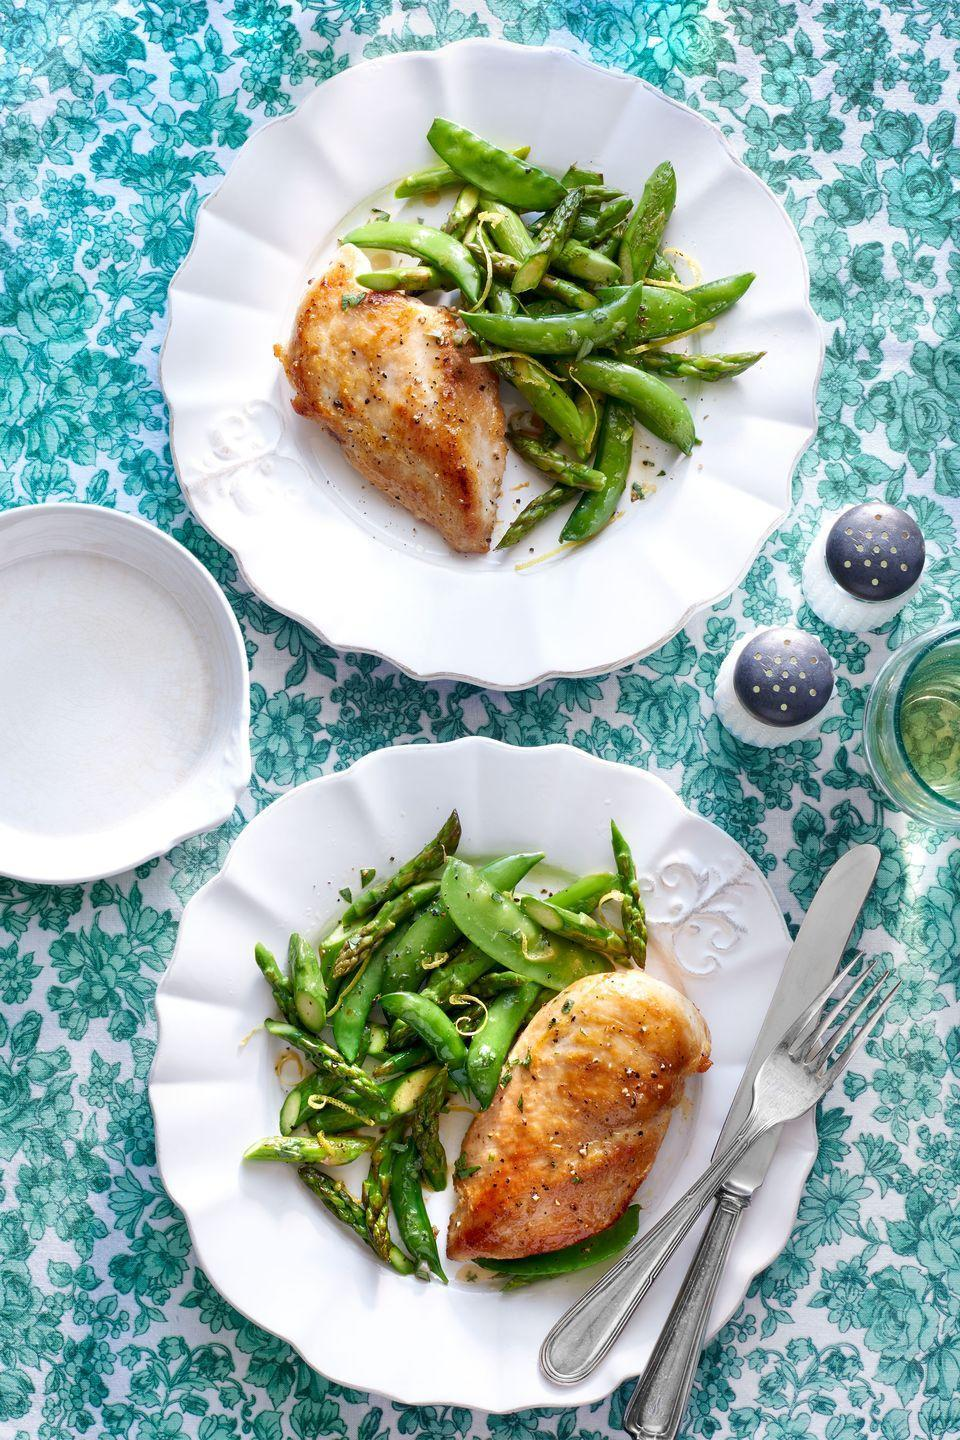 """<p>Fresh spring vegetables are an easy (and healthy!) way to upgrade a classic chicken dinner. Bonus: This dish takes less than 25 minutes to prepare. </p><p><strong><a href=""""https://www.countryliving.com/food-drinks/recipes/a276/skillet-chicken-spring-vegetables-recipe-clx0315/"""" rel=""""nofollow noopener"""" target=""""_blank"""" data-ylk=""""slk:Get the recipe"""" class=""""link rapid-noclick-resp"""">Get the recipe</a>.</strong></p>"""